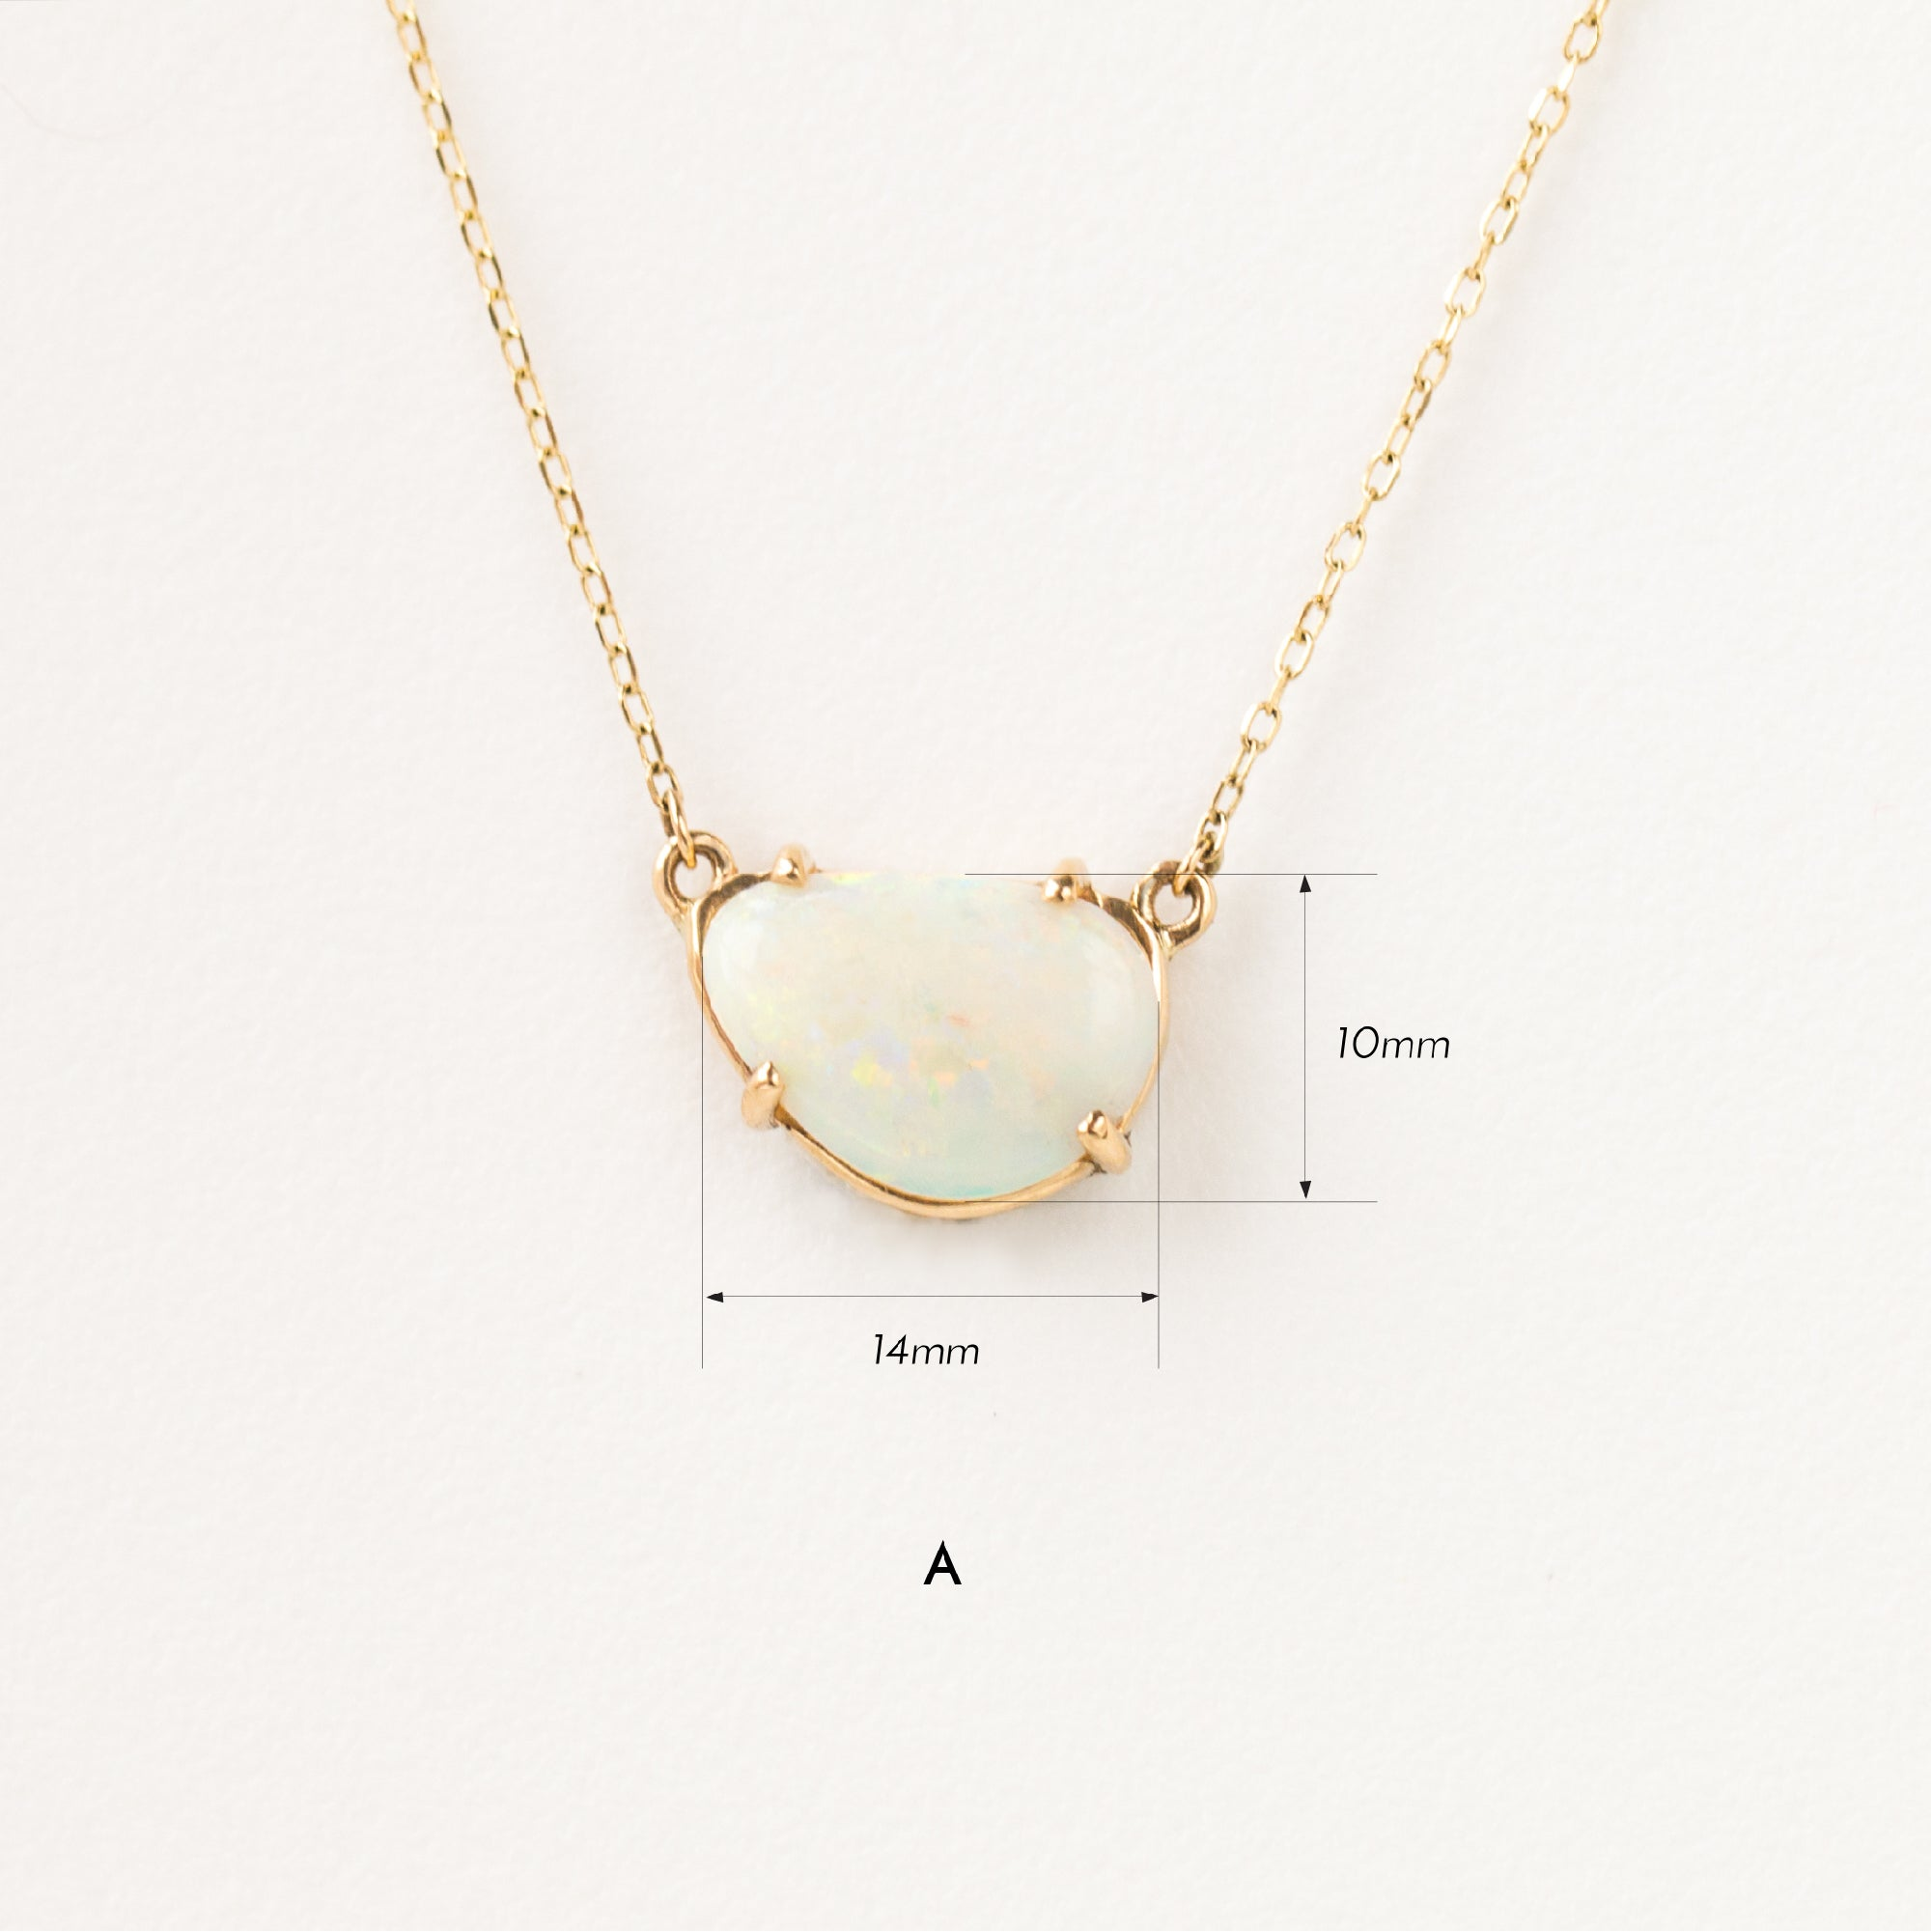 Freeform Opal Necklace